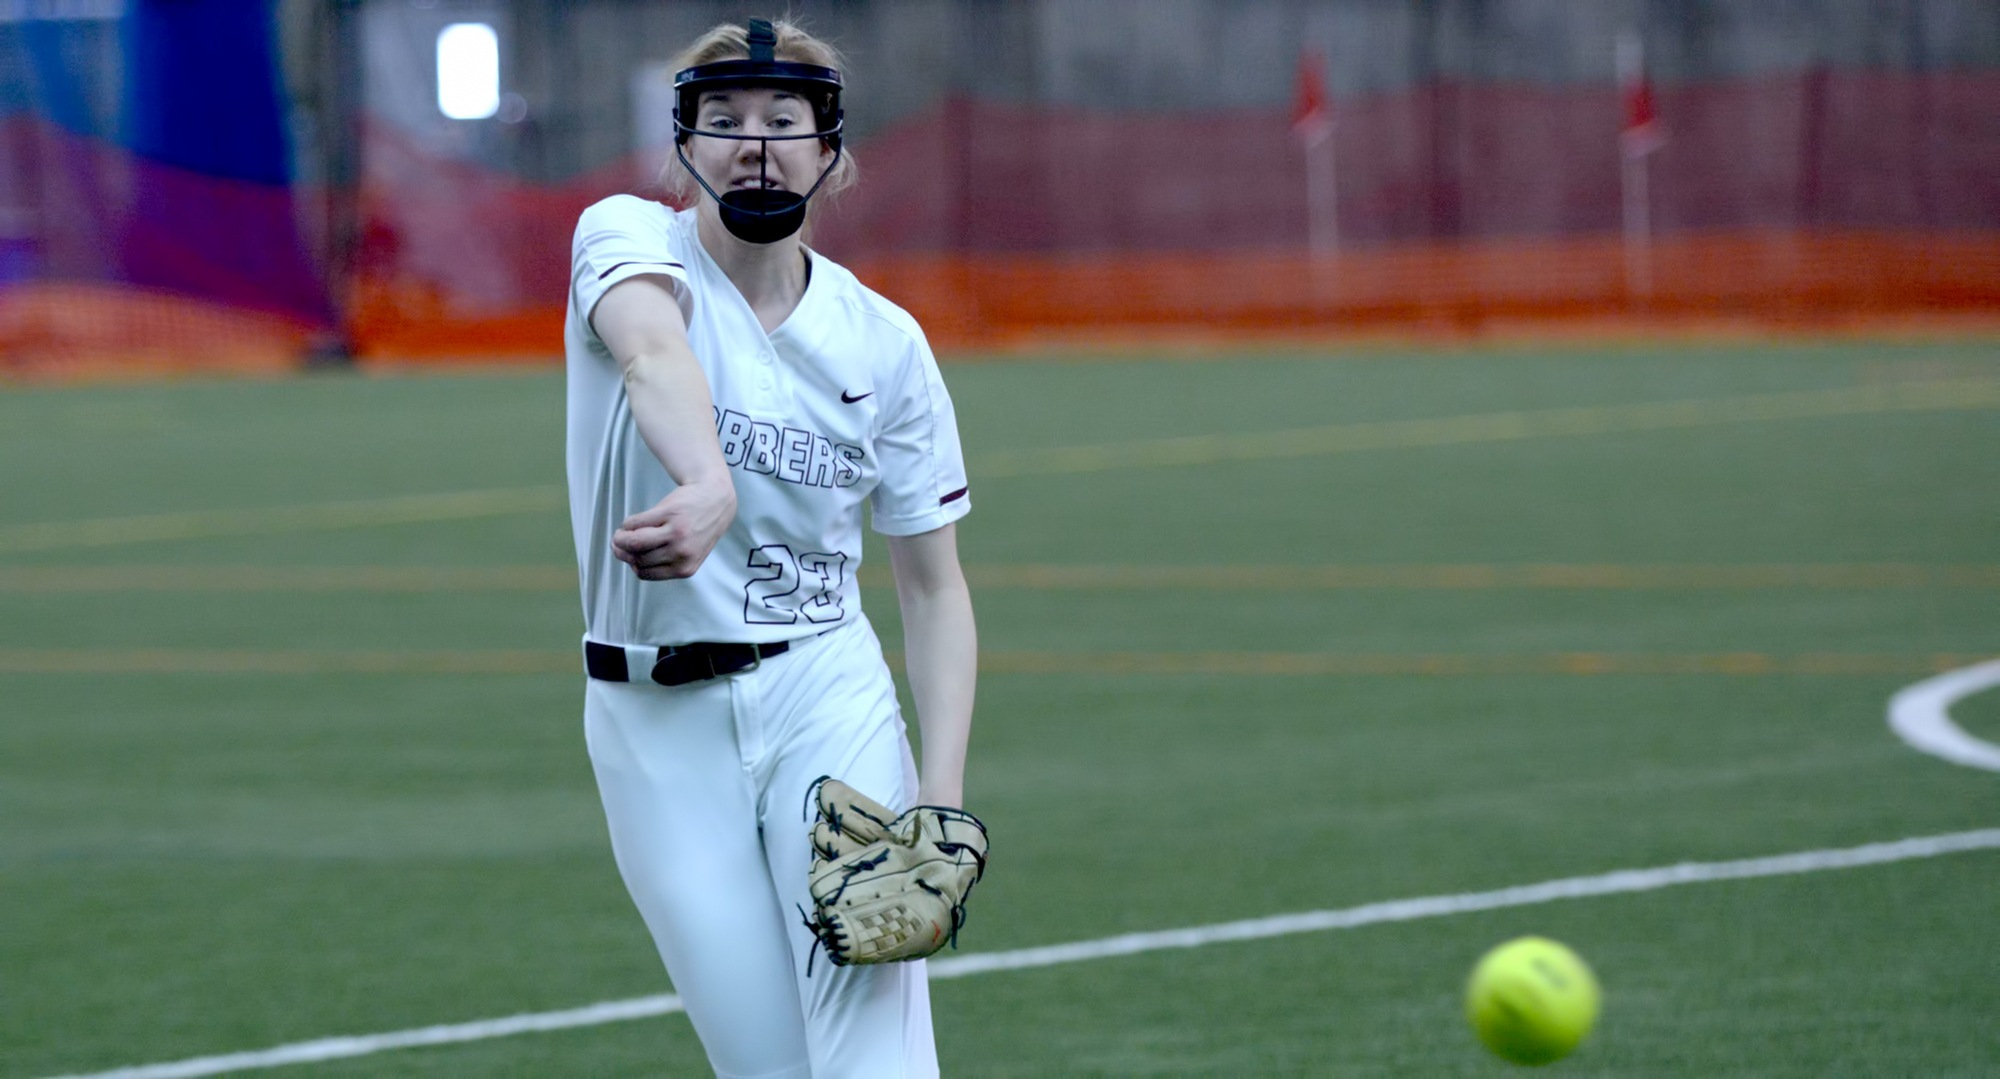 Freshman Megan Gavin continued her recent string of solid outings as she only allowed two runs and struck out three in her MIAC debut against Macalester.